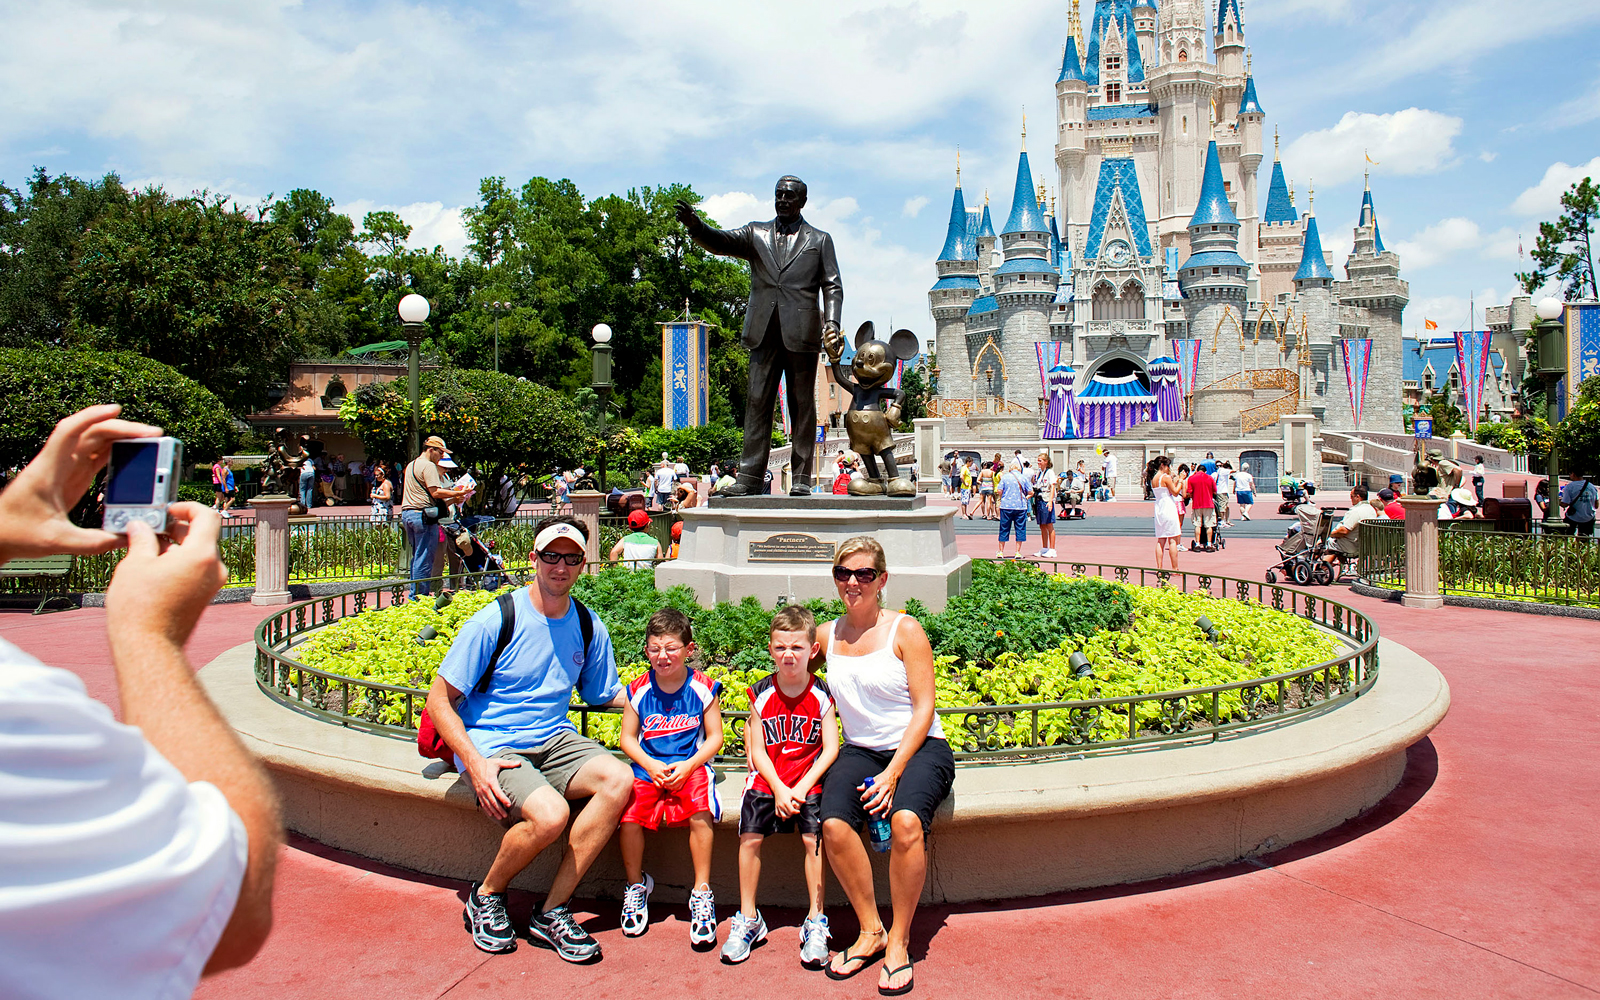 Magic Kingdom at Walt Disney World Resort in Orlando Florida